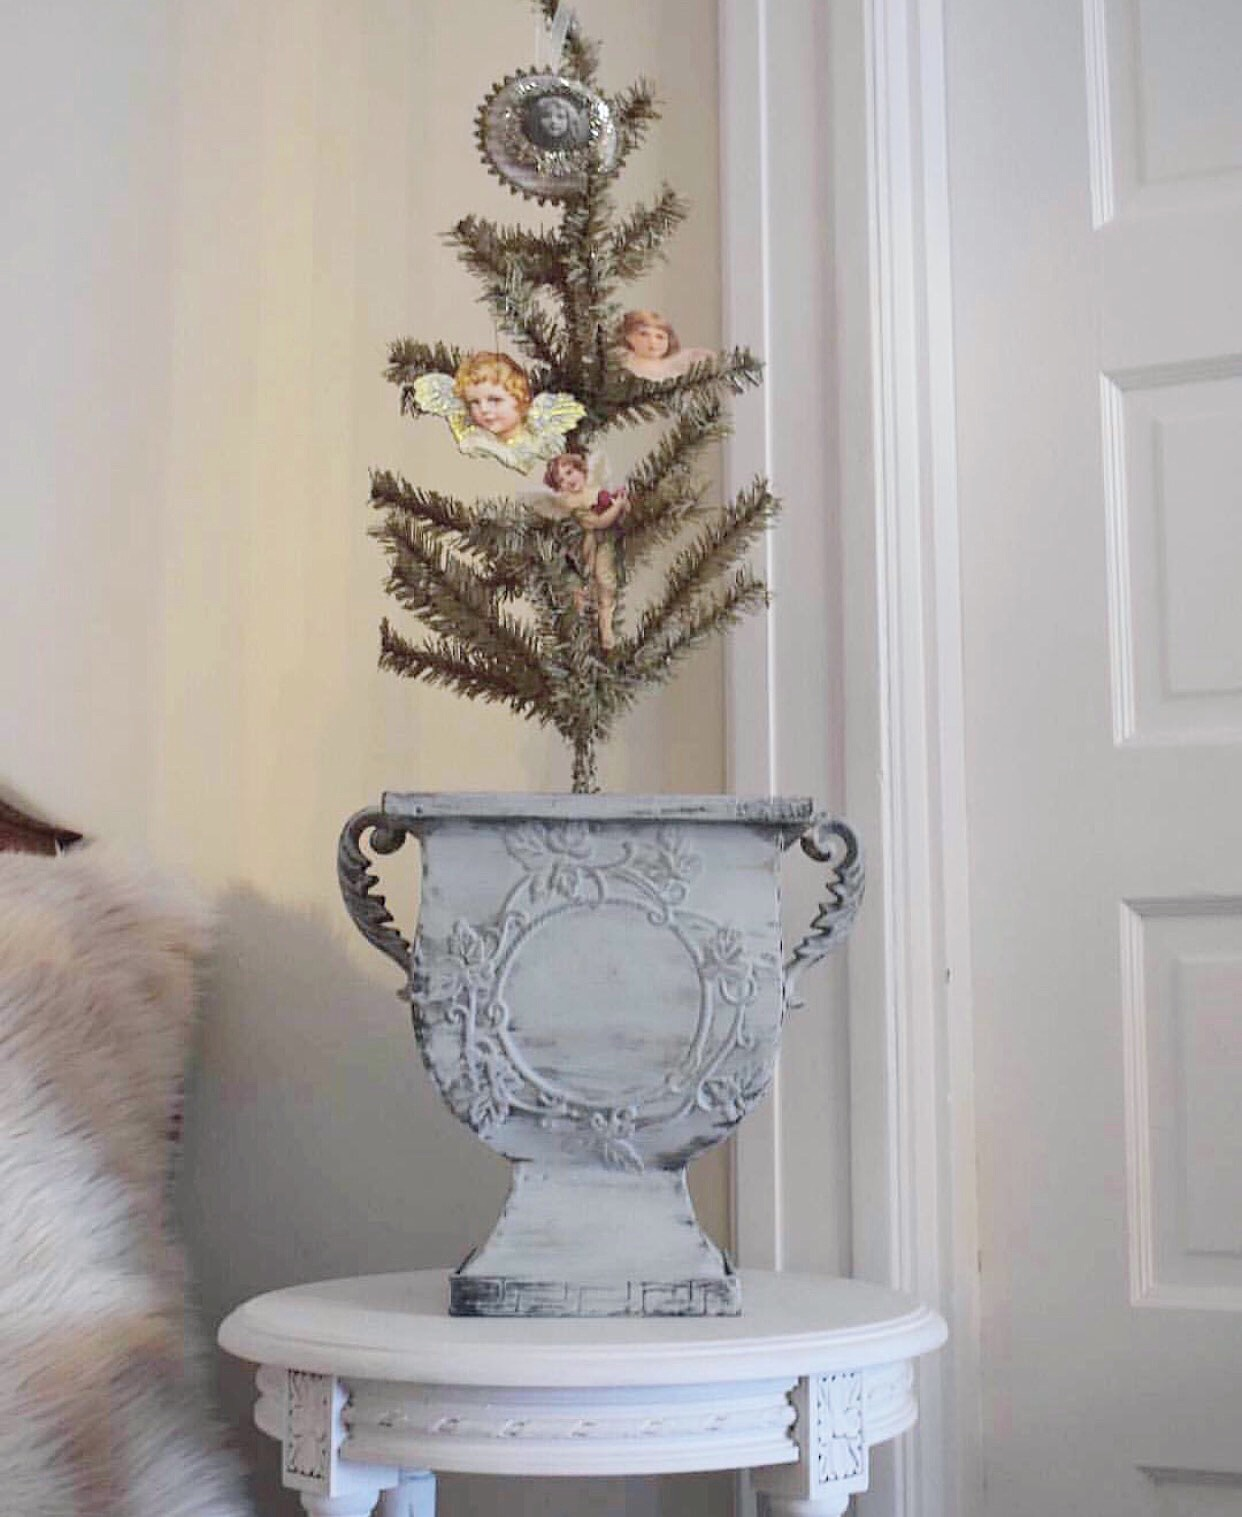 French Country Christmas Decorating Inspiration from Corner French Cottage! Come see more of the house tour! #frenchcountry #interiordesign #christmasdecor #shabbychic